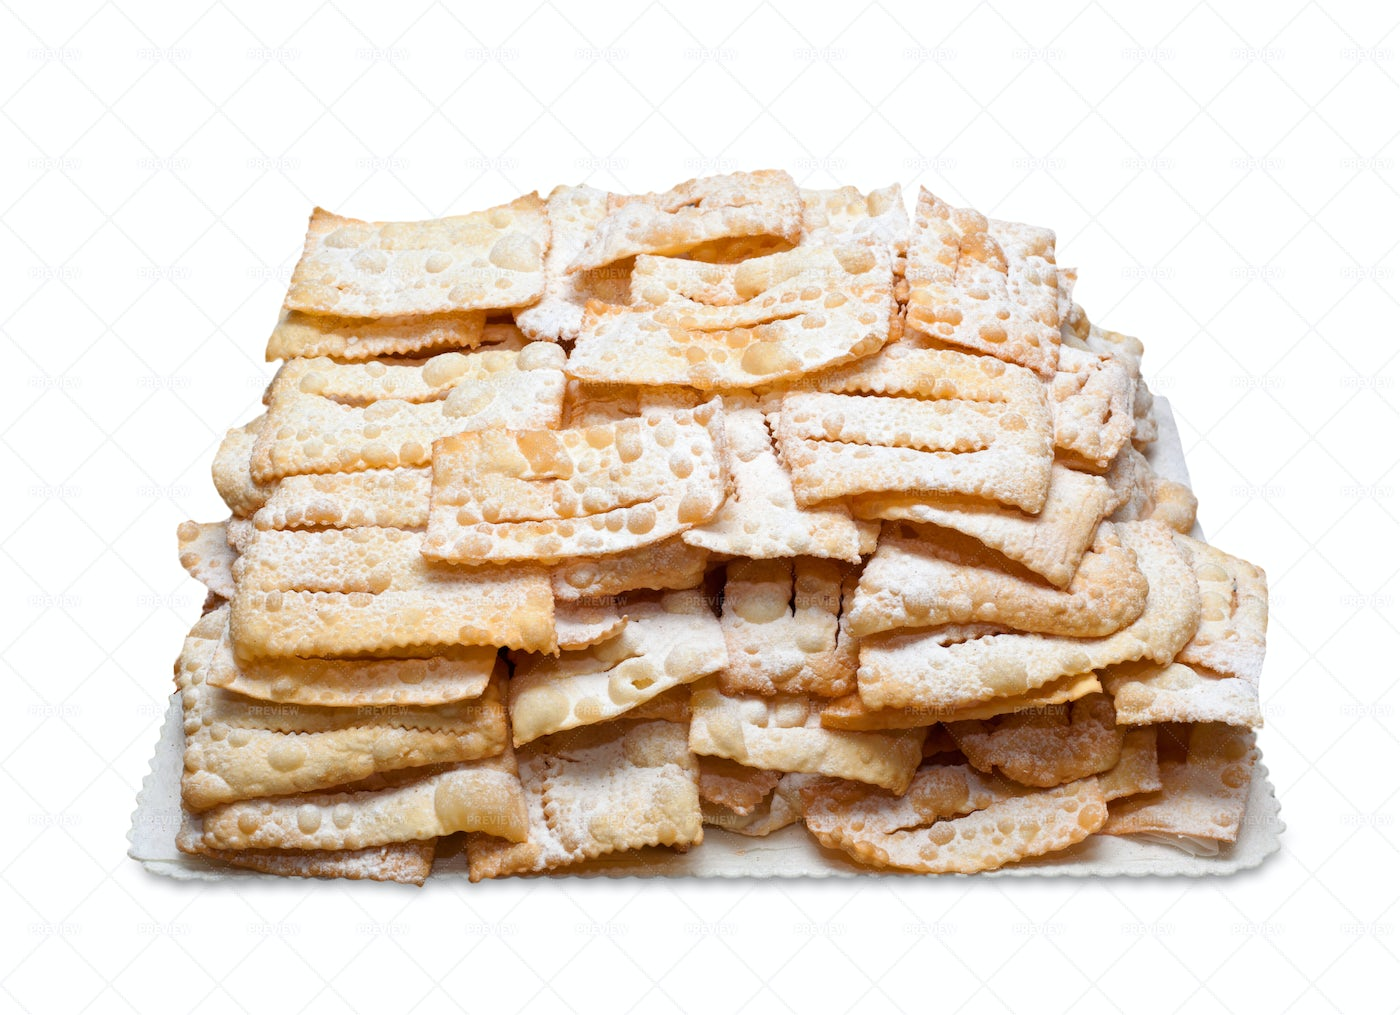 Fried Chiacchiere: Stock Photos